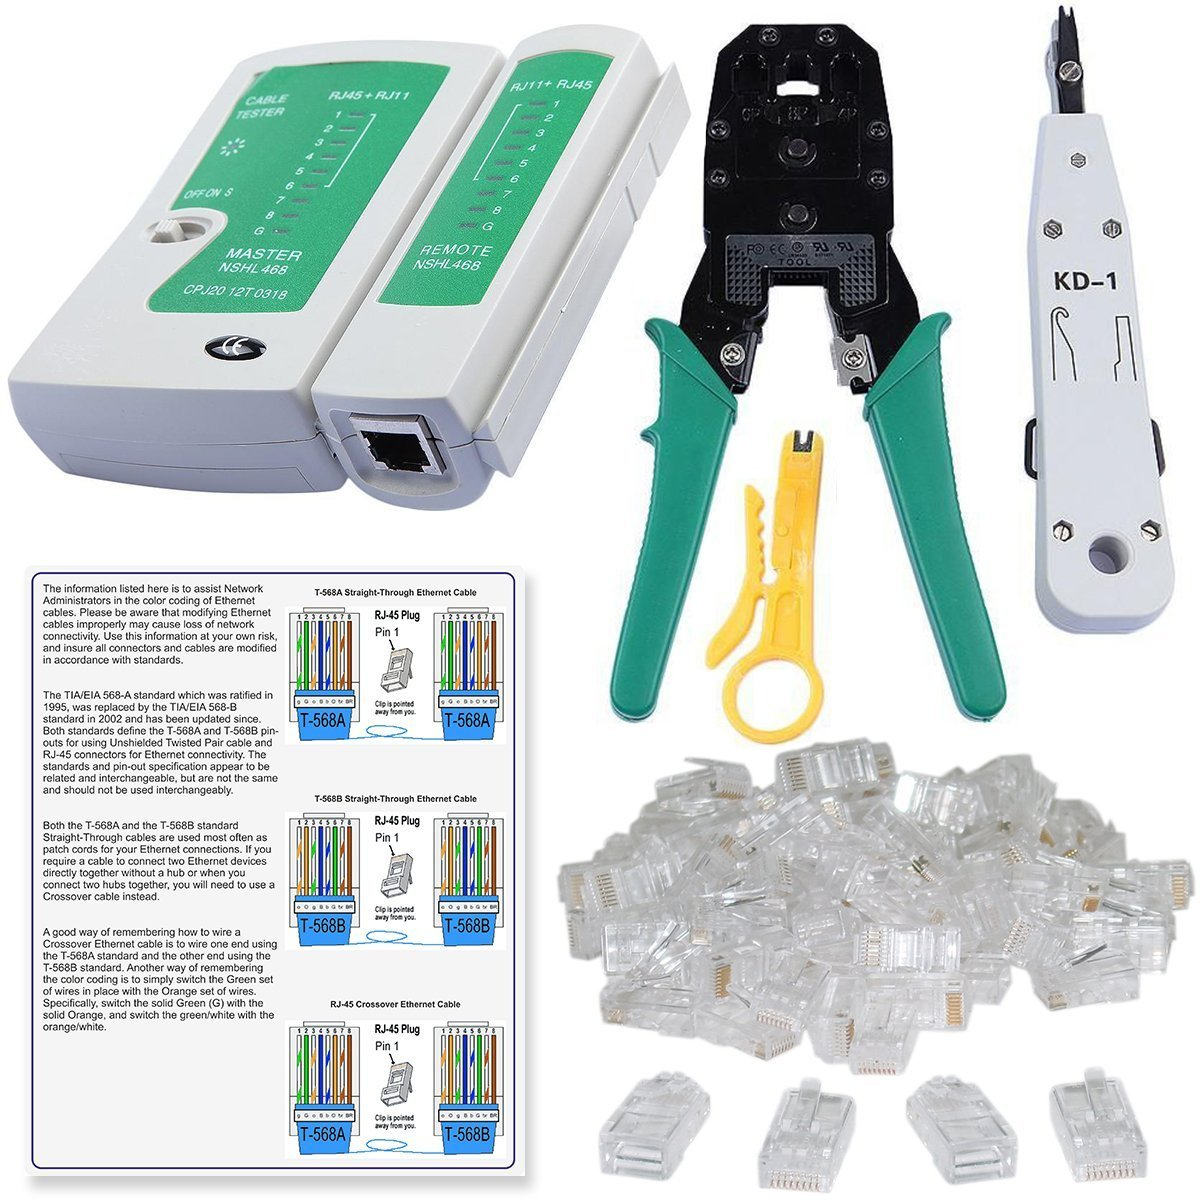 Shopee Rj45 Rj11 Crimping Tool Kd 1 Professional Punch Down Lan How To Make An Ethernet Cable Tester Colour Coding And 20 Pieces Connectors Combo Set